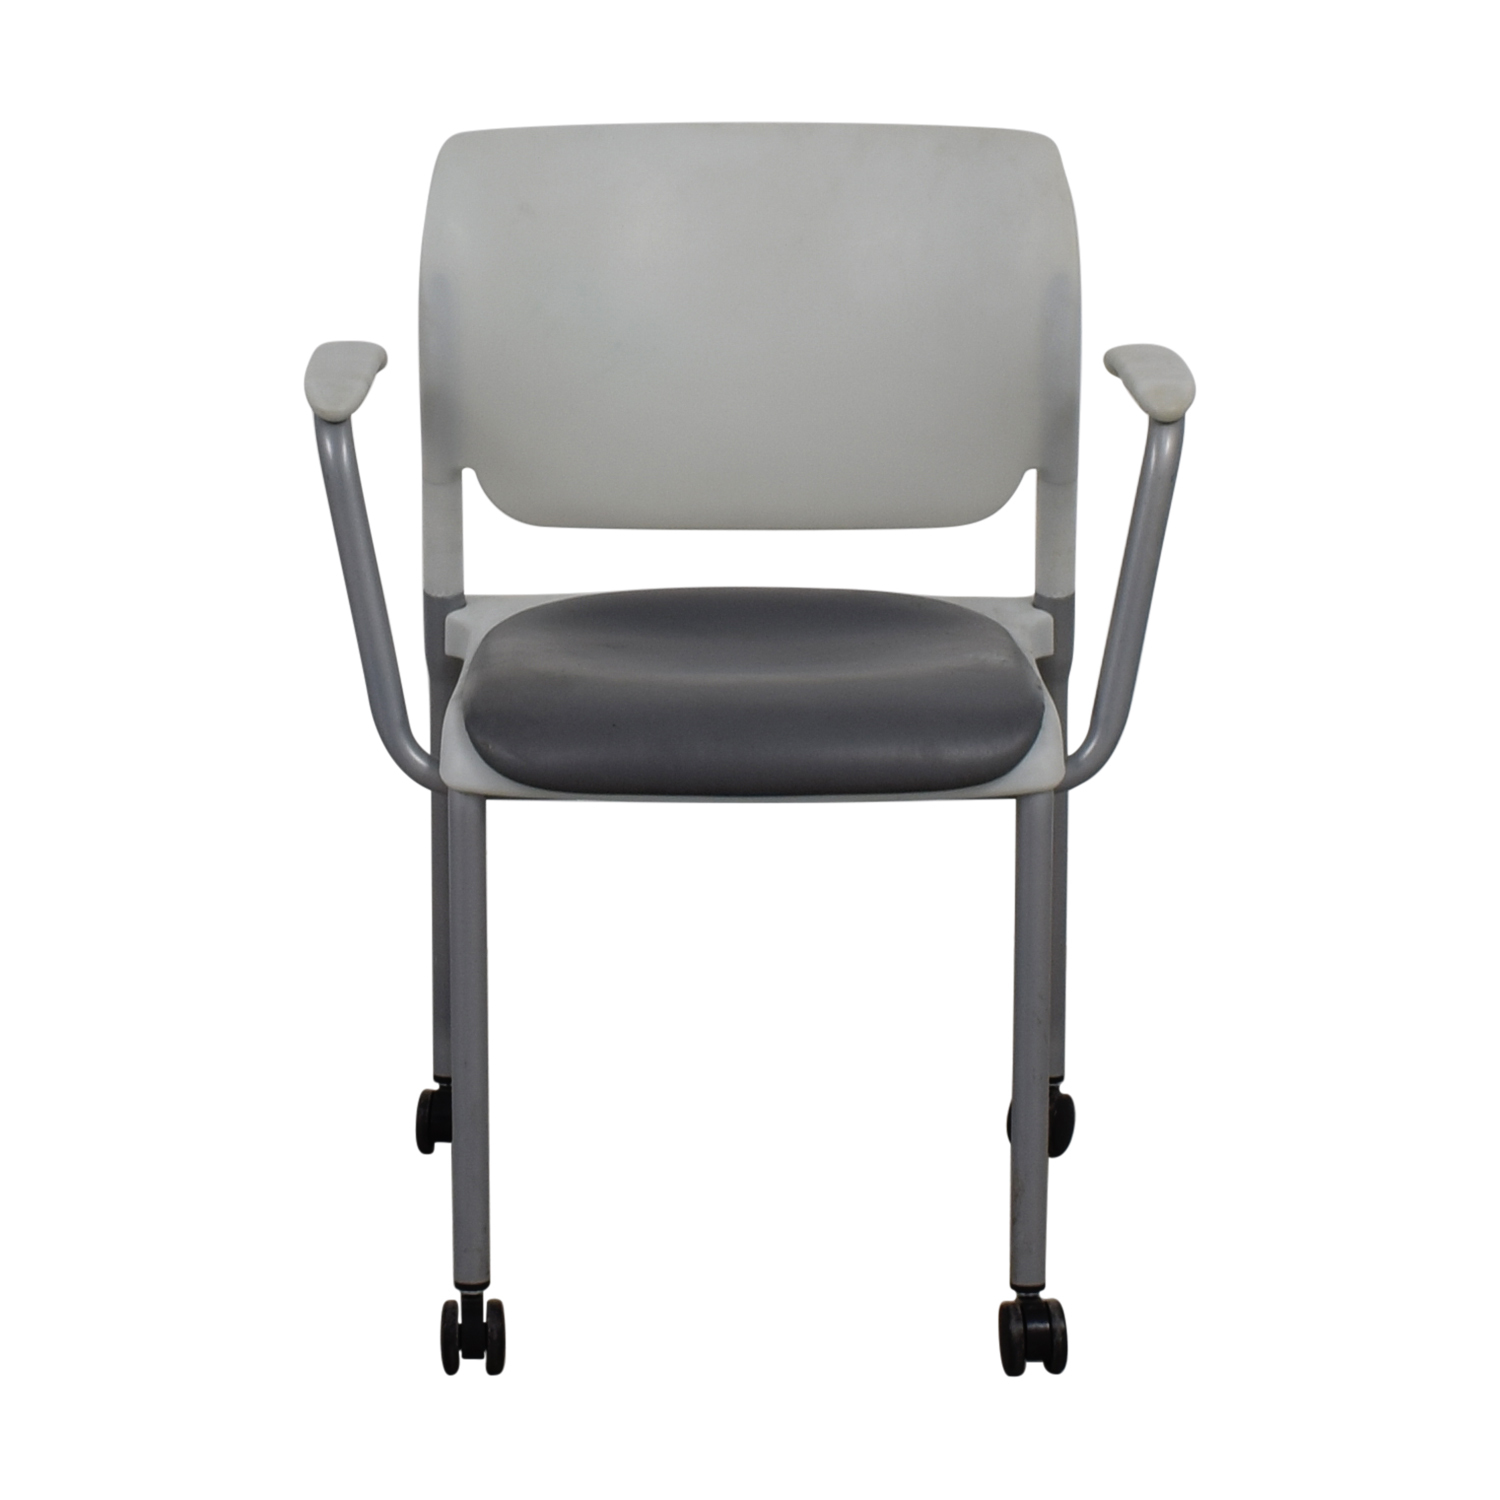 SitOnIt White and Grey Side Chair on Castors SitOnIt